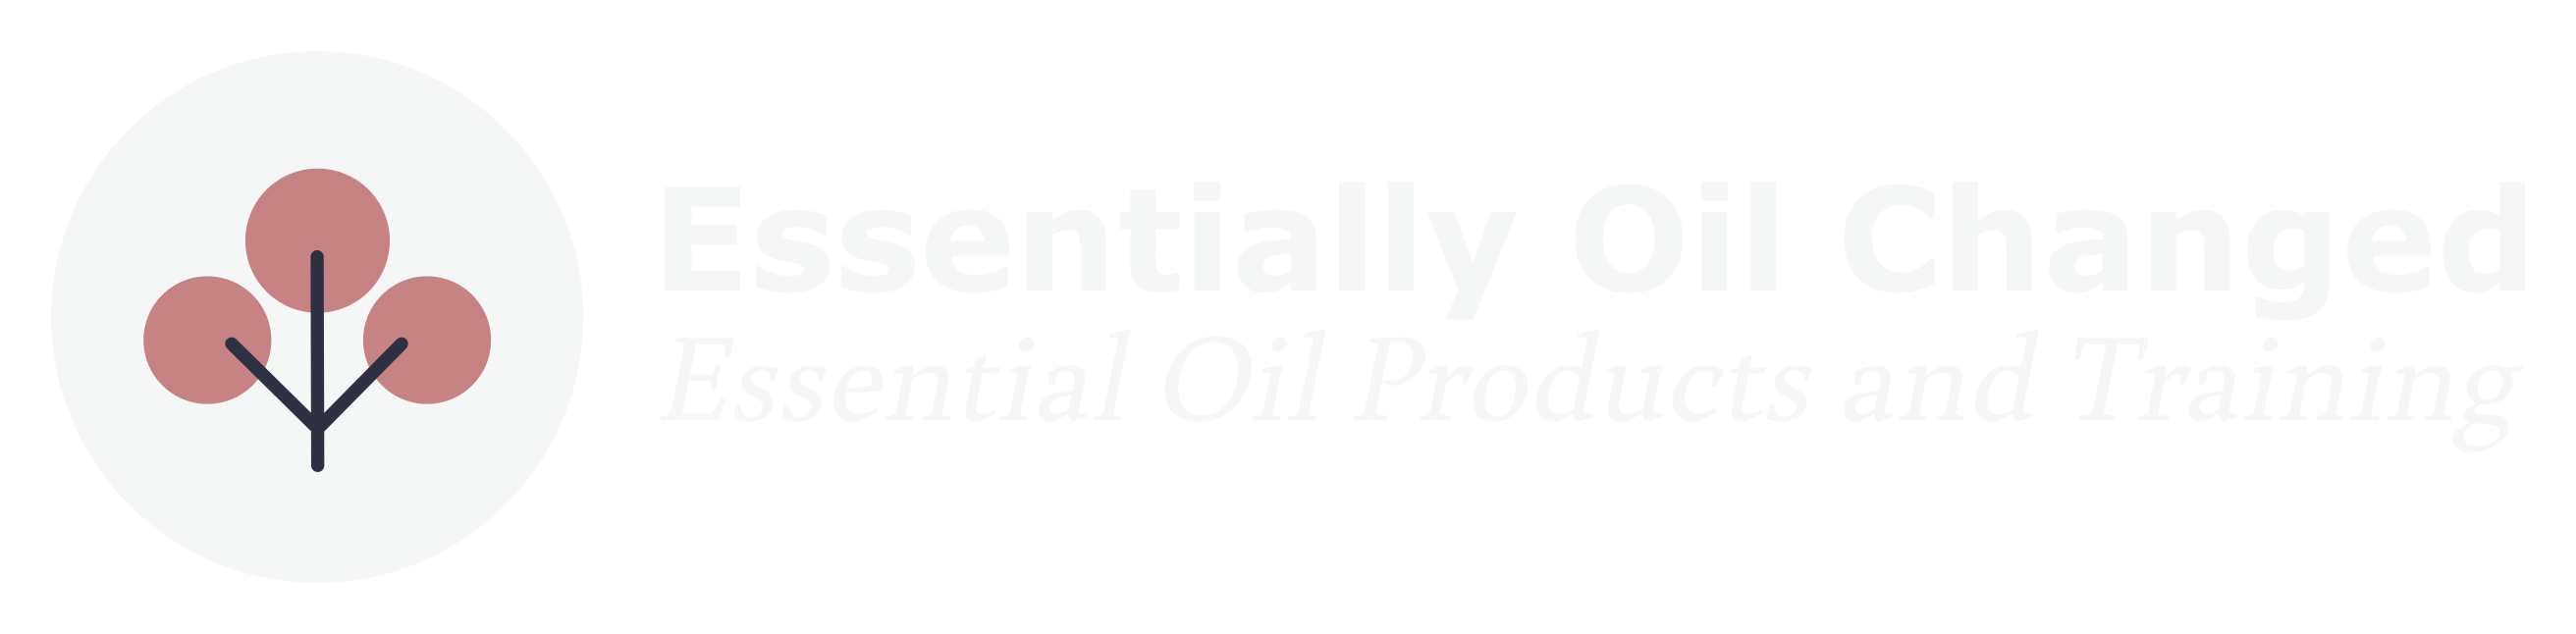 essentially oil changed logo